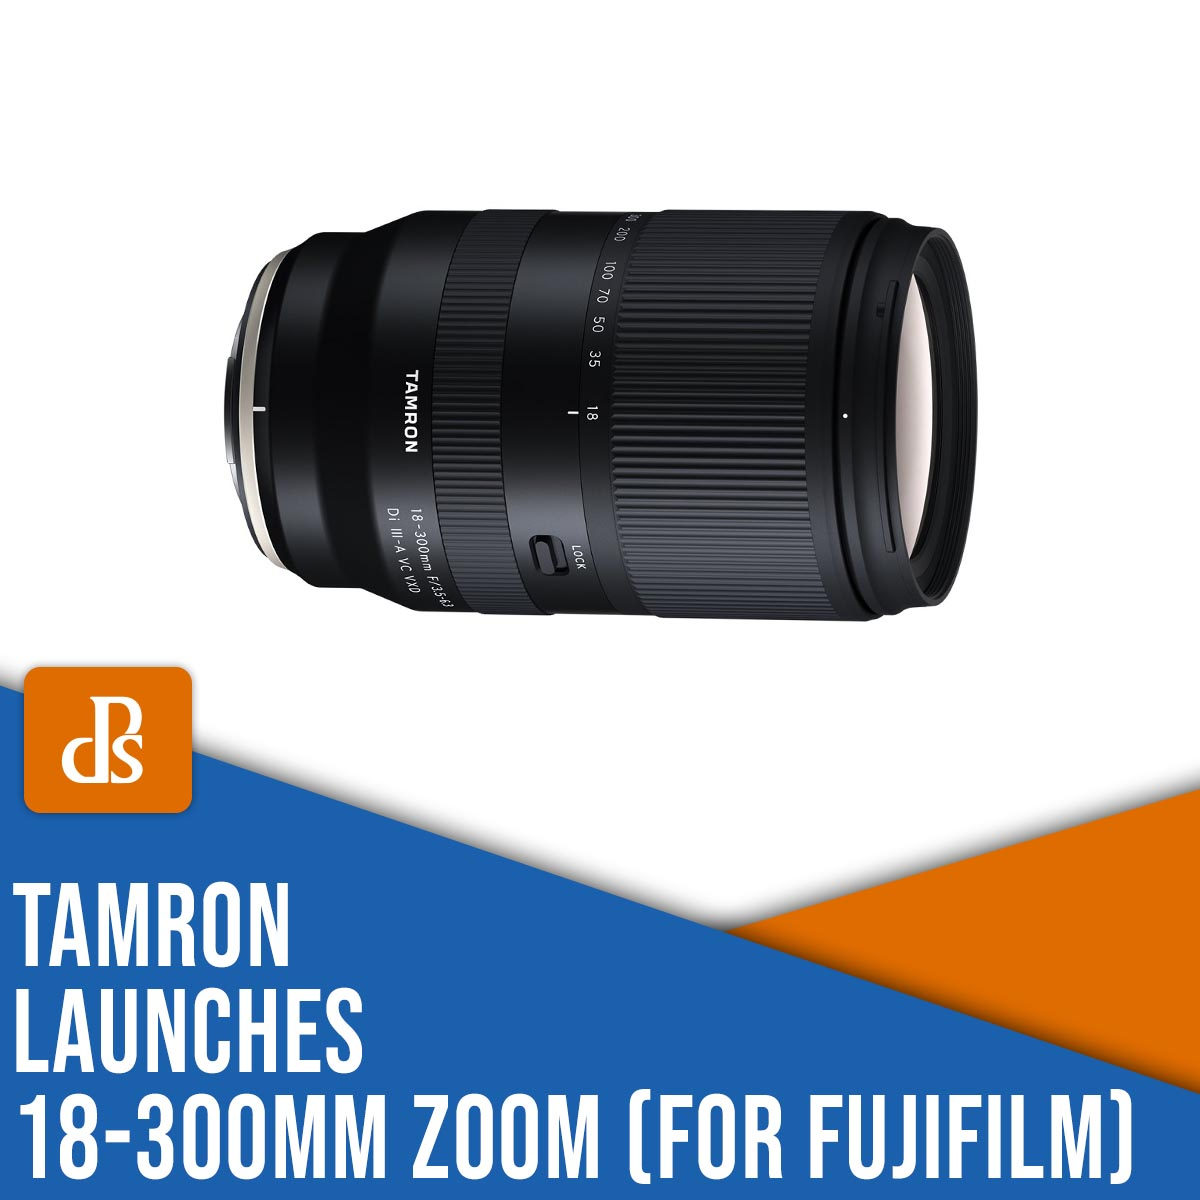 Tamron launches 18-300mm zoom for Fujifilm and Sony